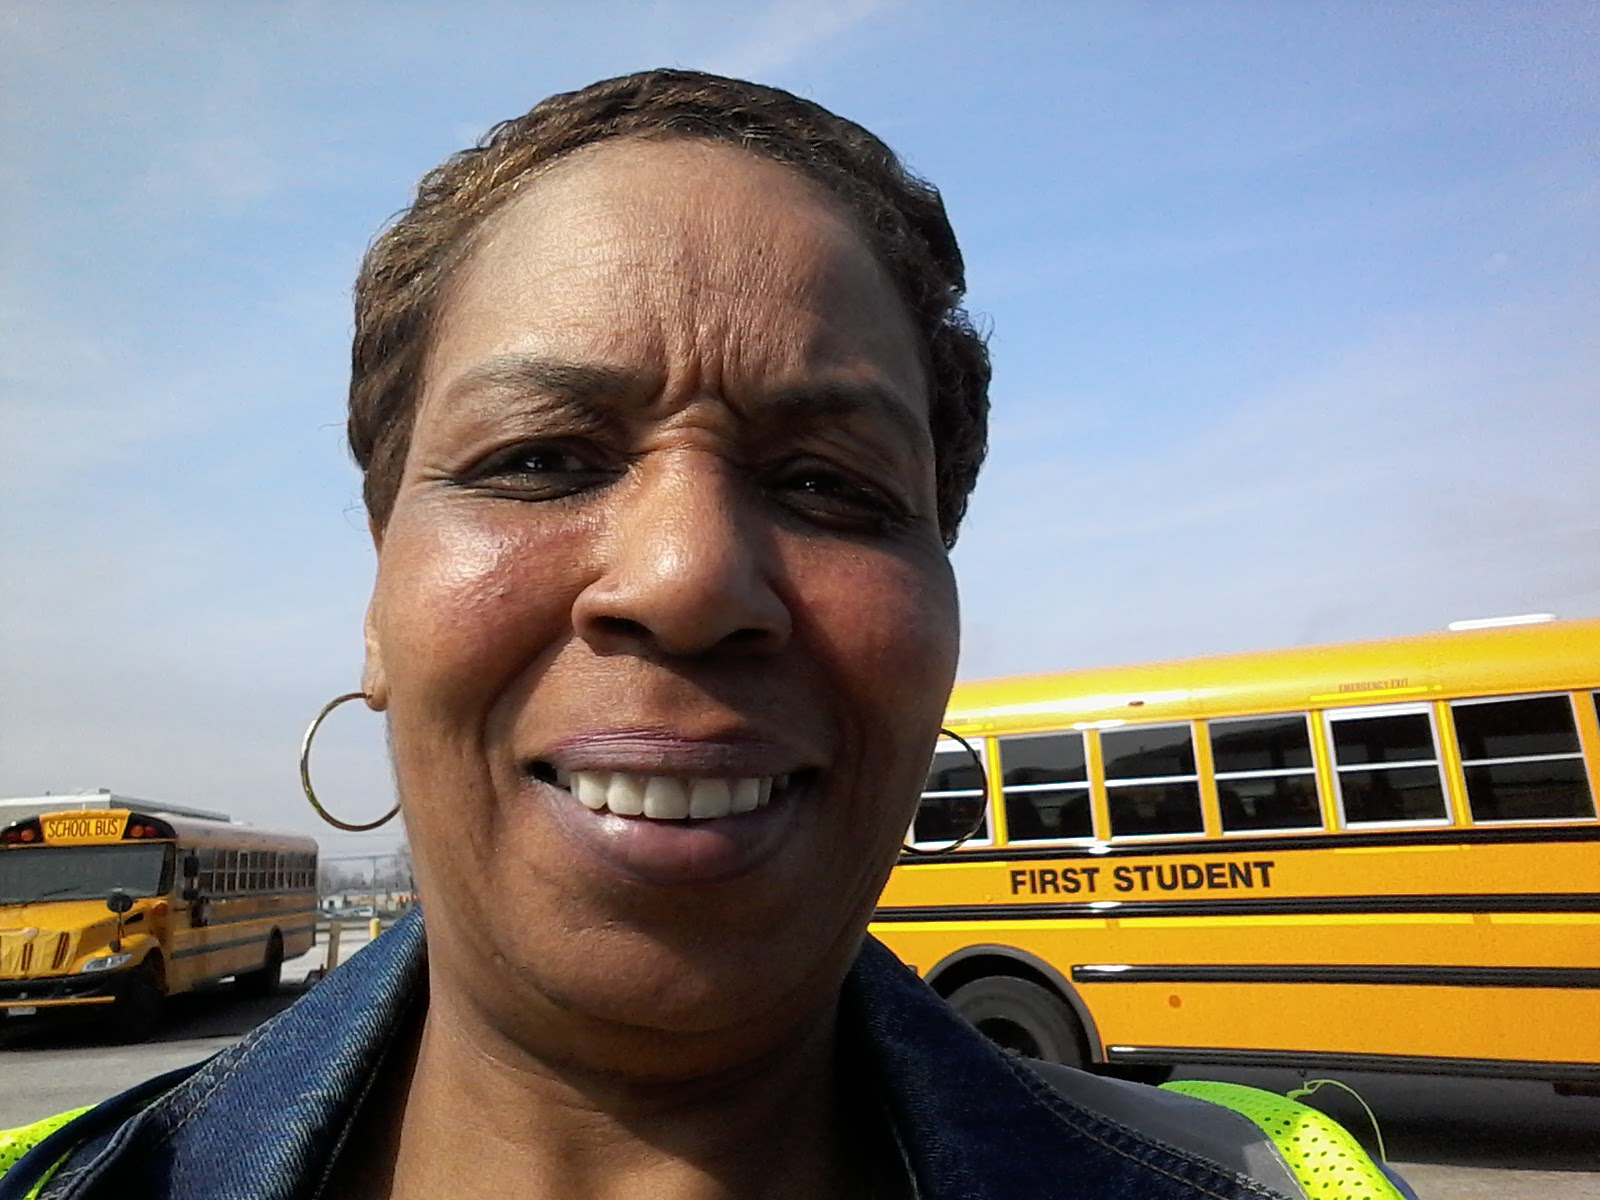 School bus drivers excited, scared as school year approaches